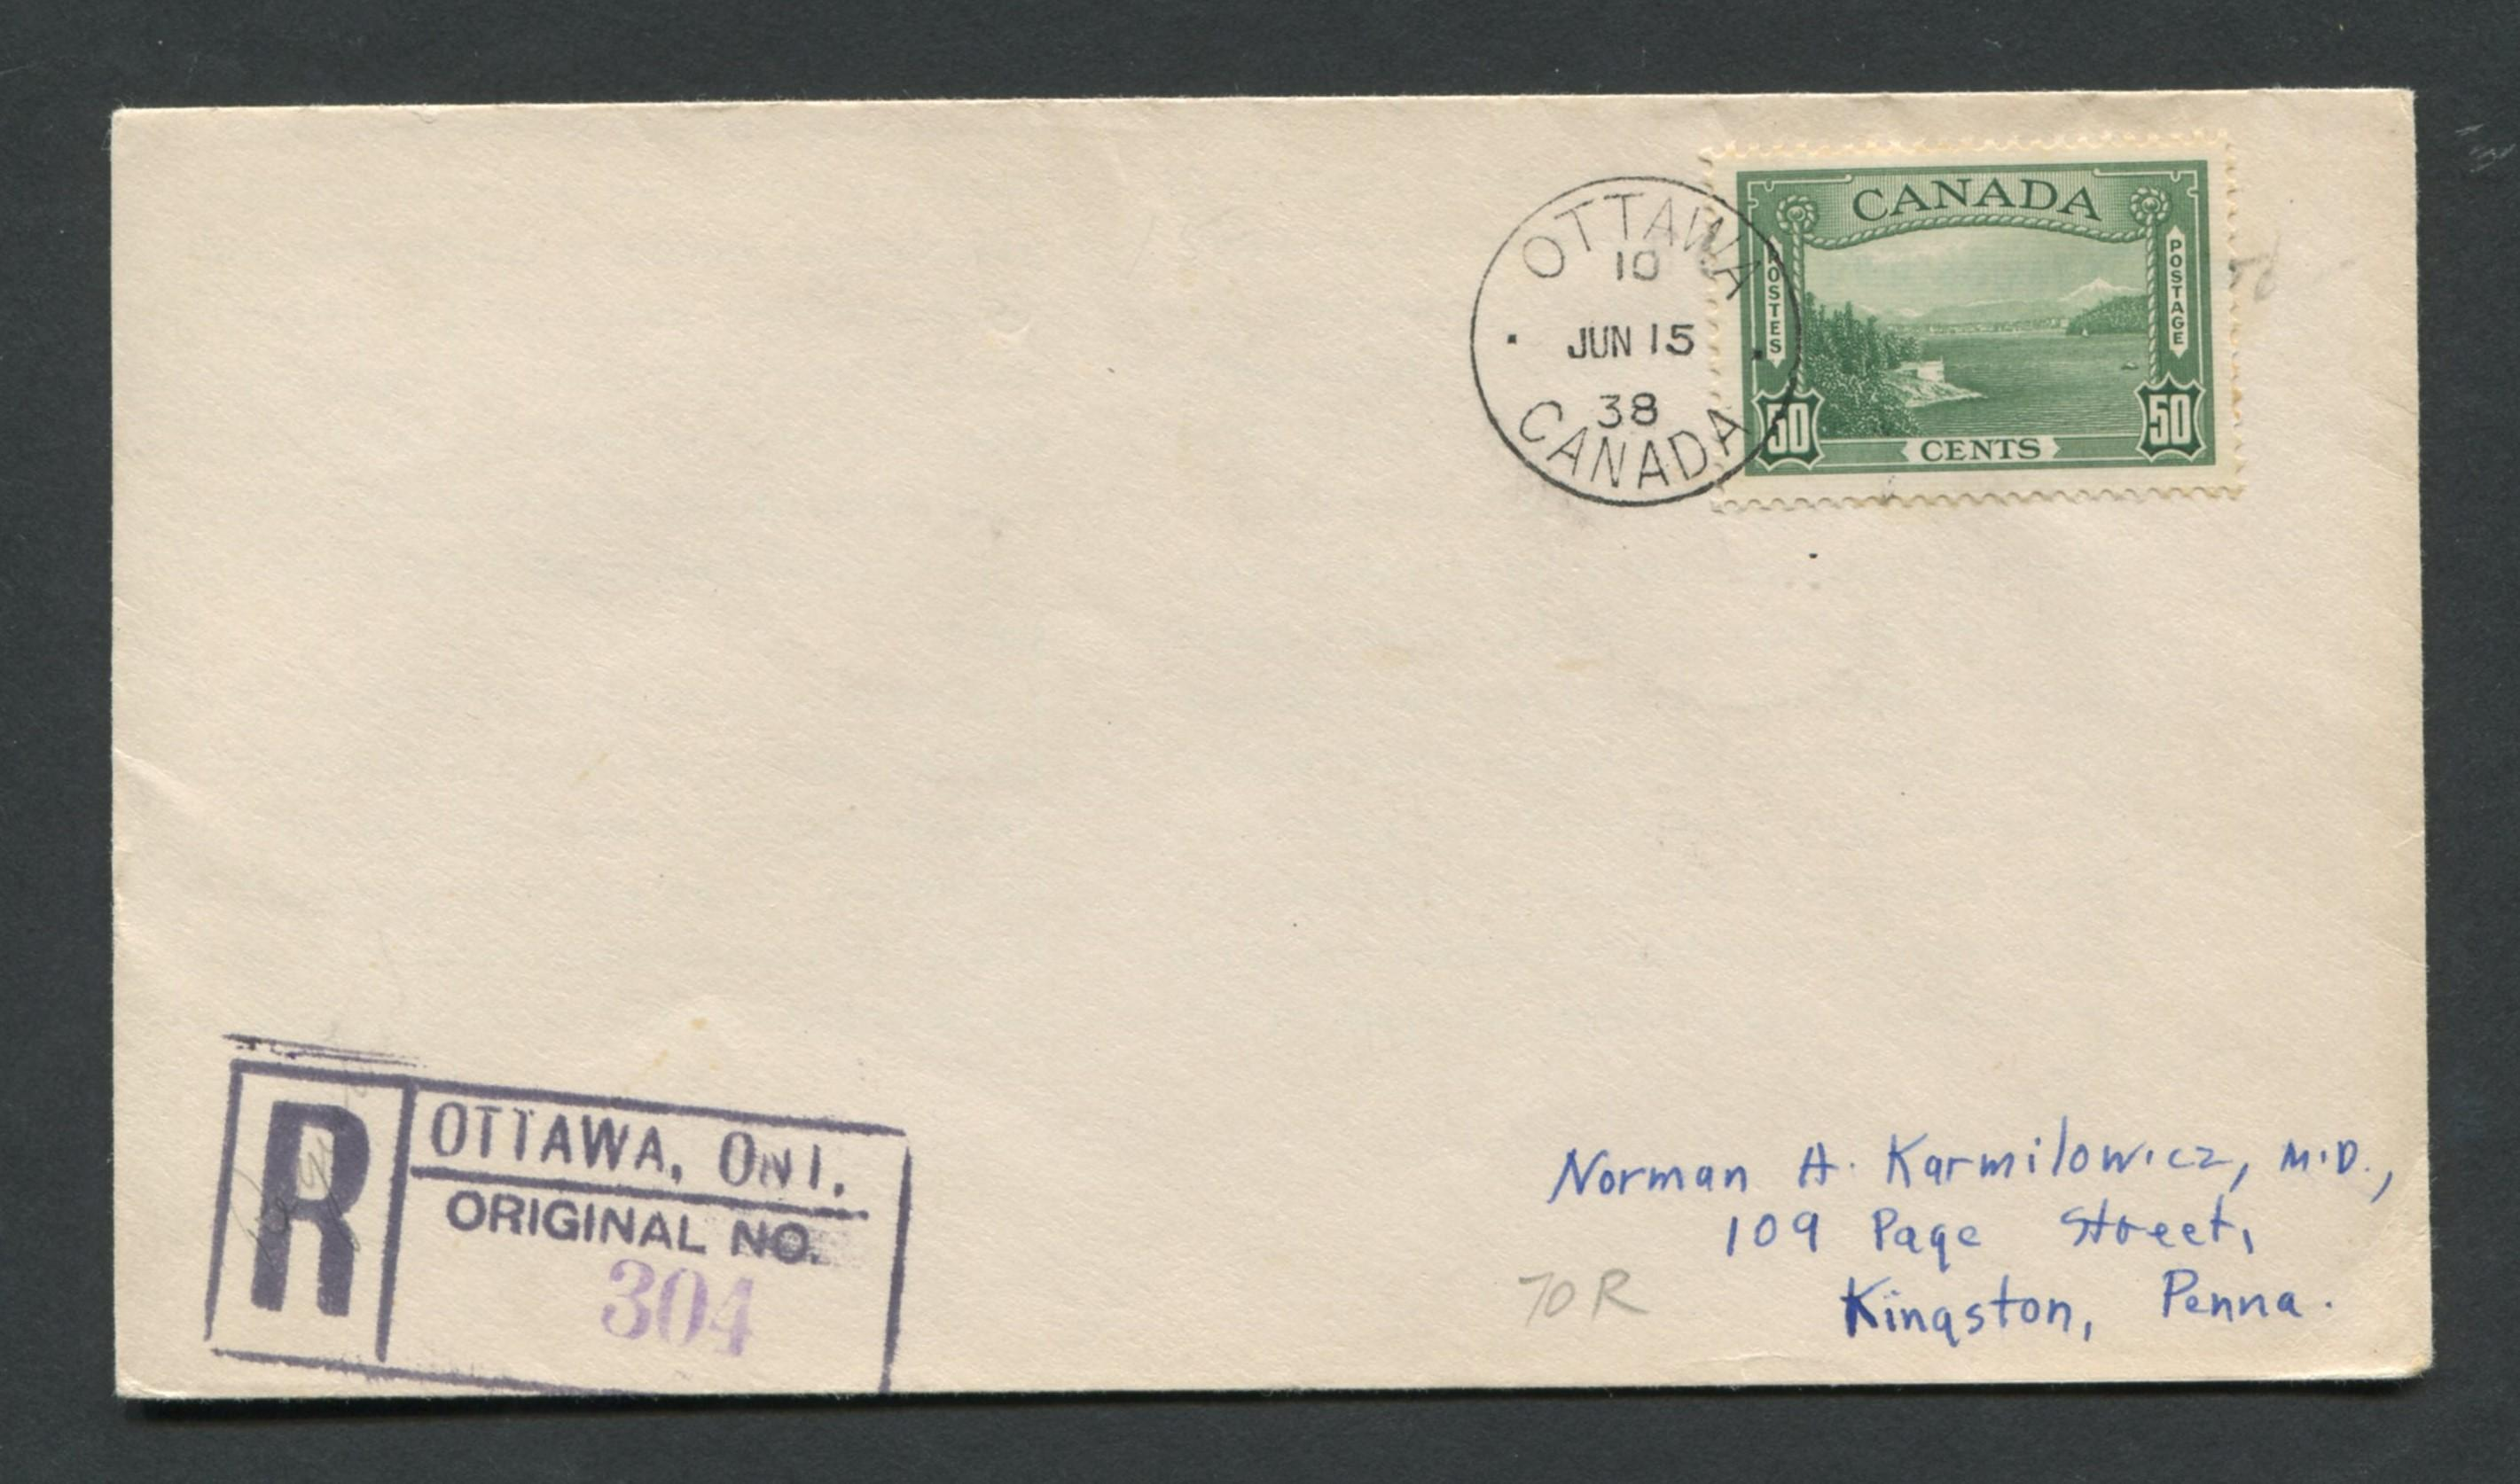 Canada 1938 First Day Cover #244 50c Green